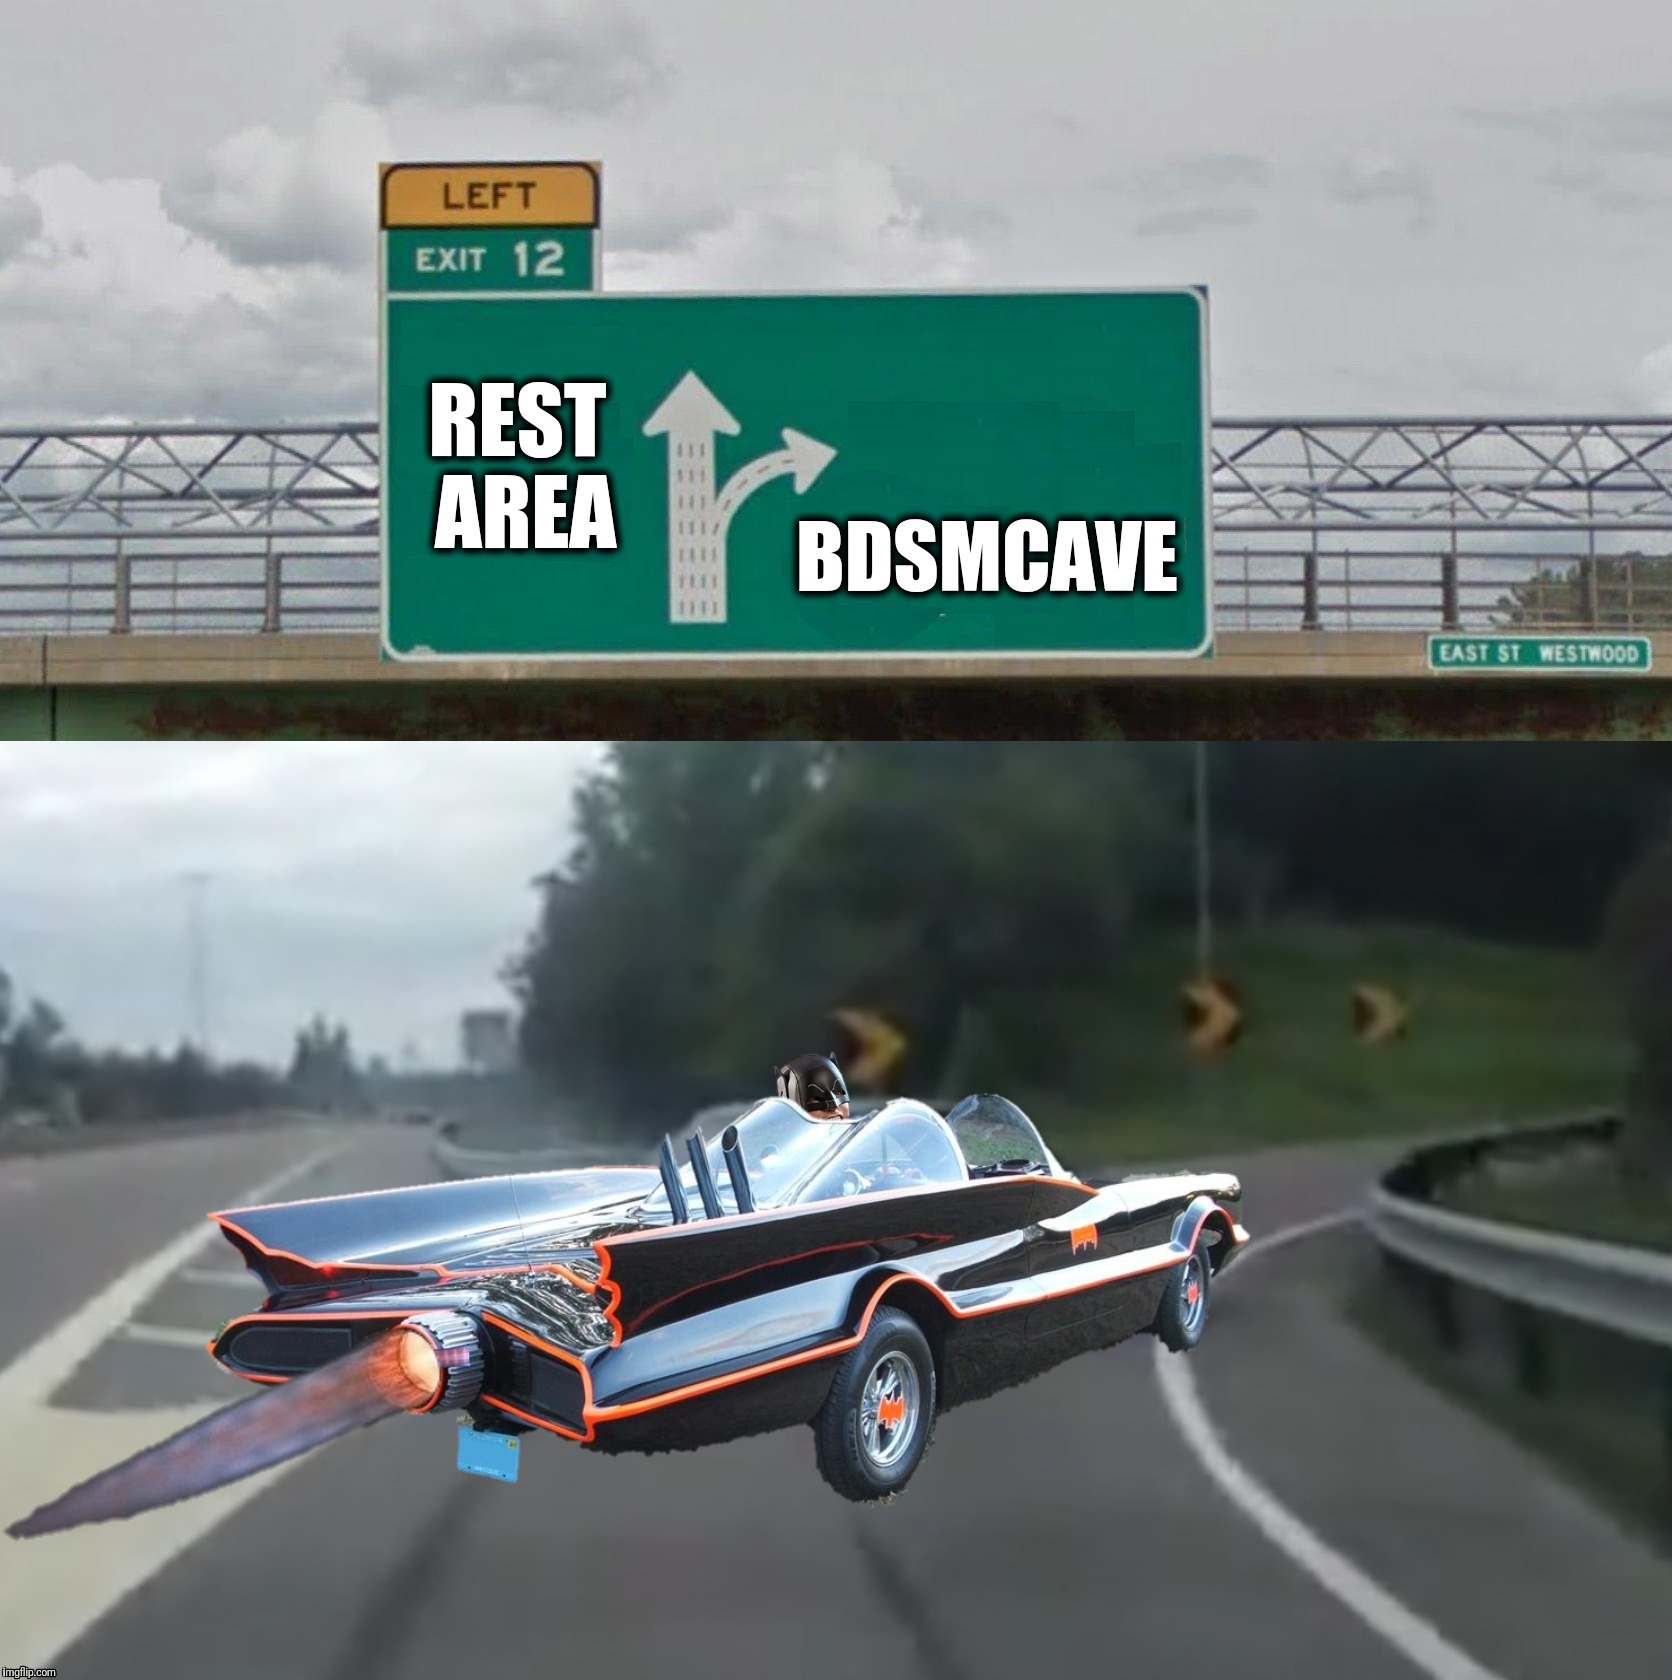 Left Exit 12 Batmobile | REST AREA BDSMCAVE | image tagged in left exit 12 batmobile | made w/ Imgflip meme maker